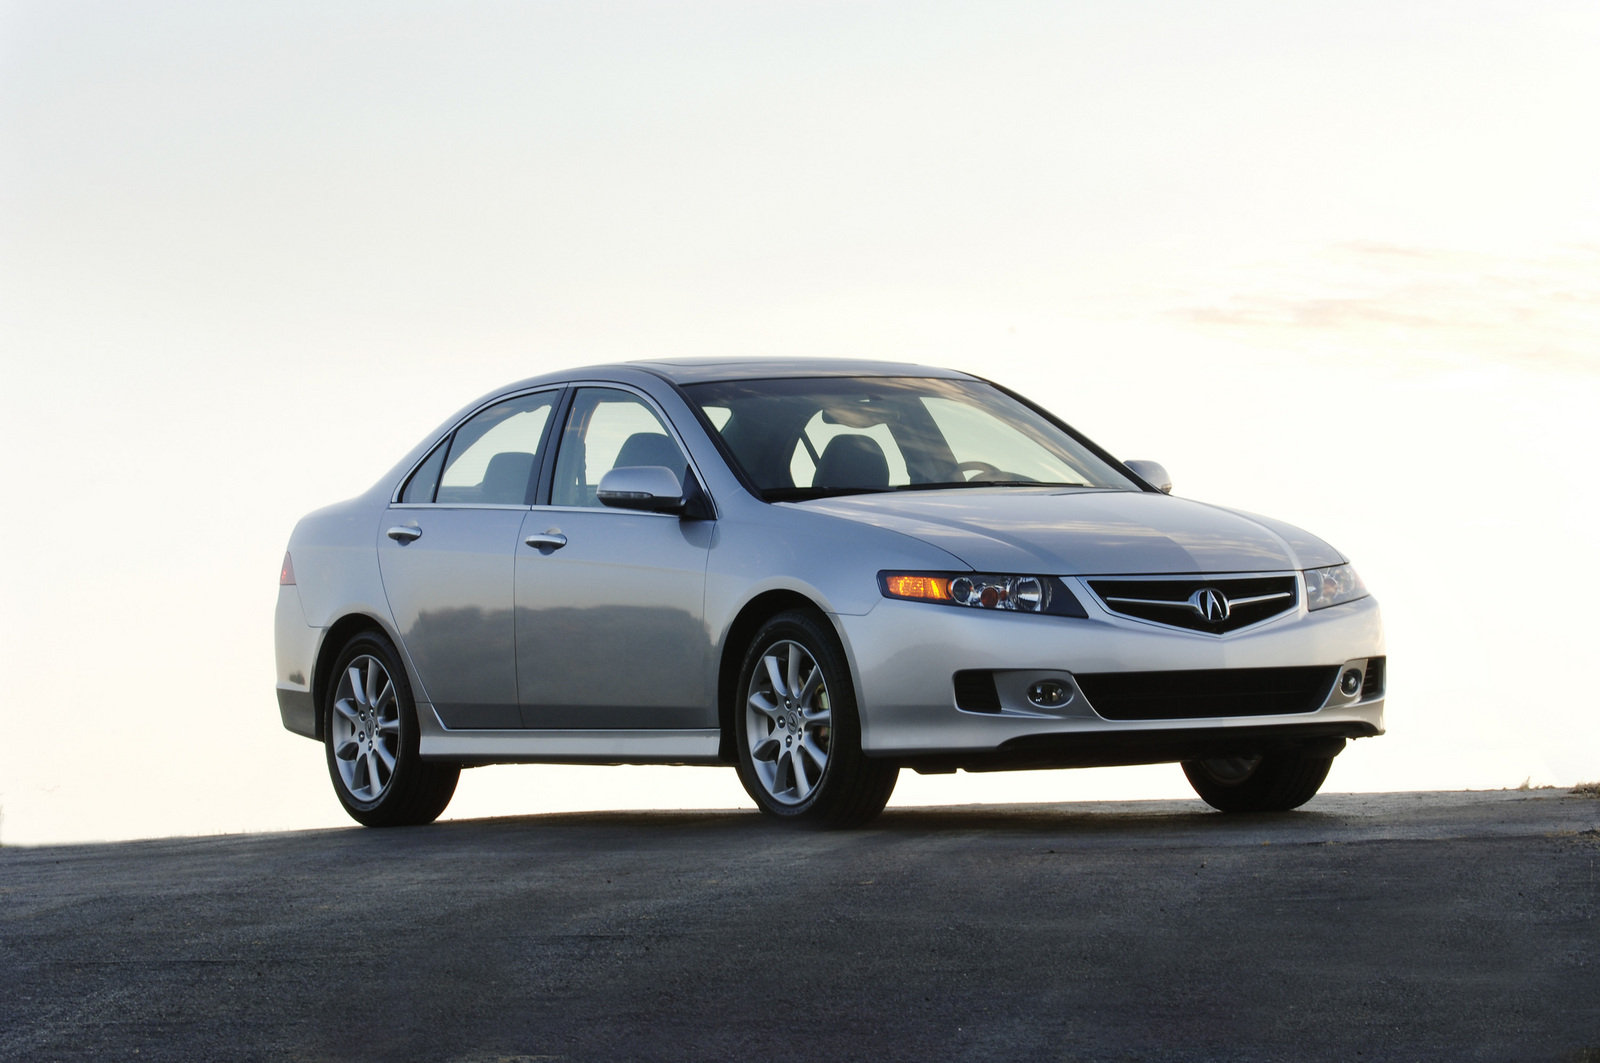 2007 acura tsx review top speed. Black Bedroom Furniture Sets. Home Design Ideas